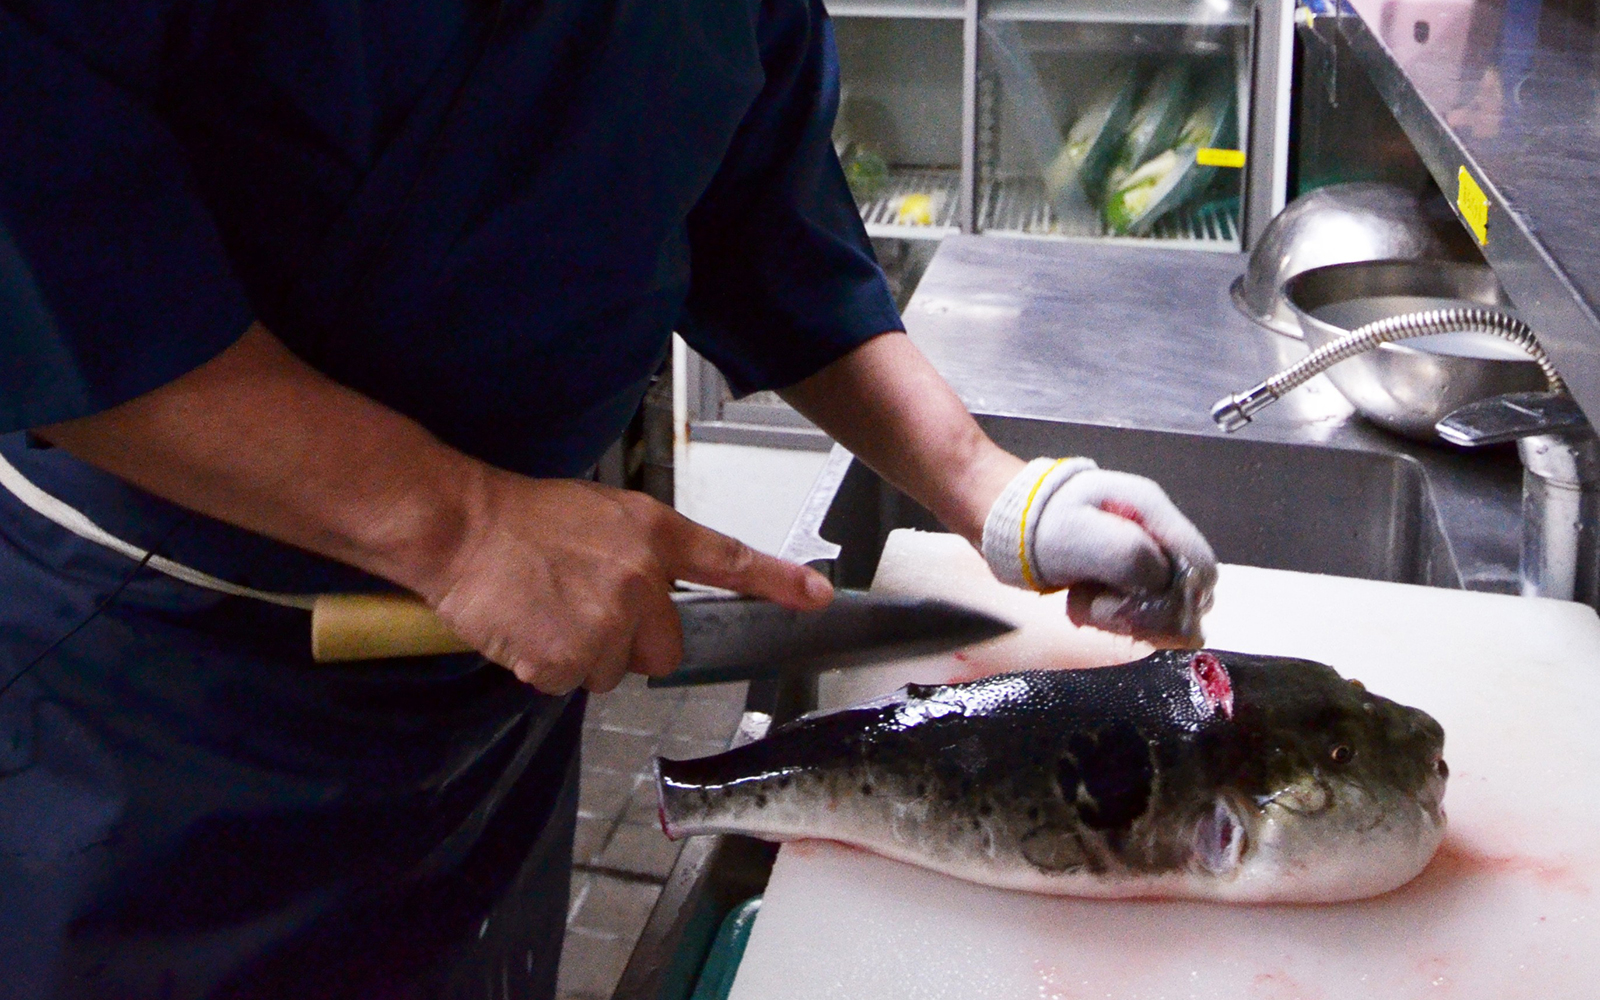 Japanese Restaurant Raided For Serving Deadly Blowfish